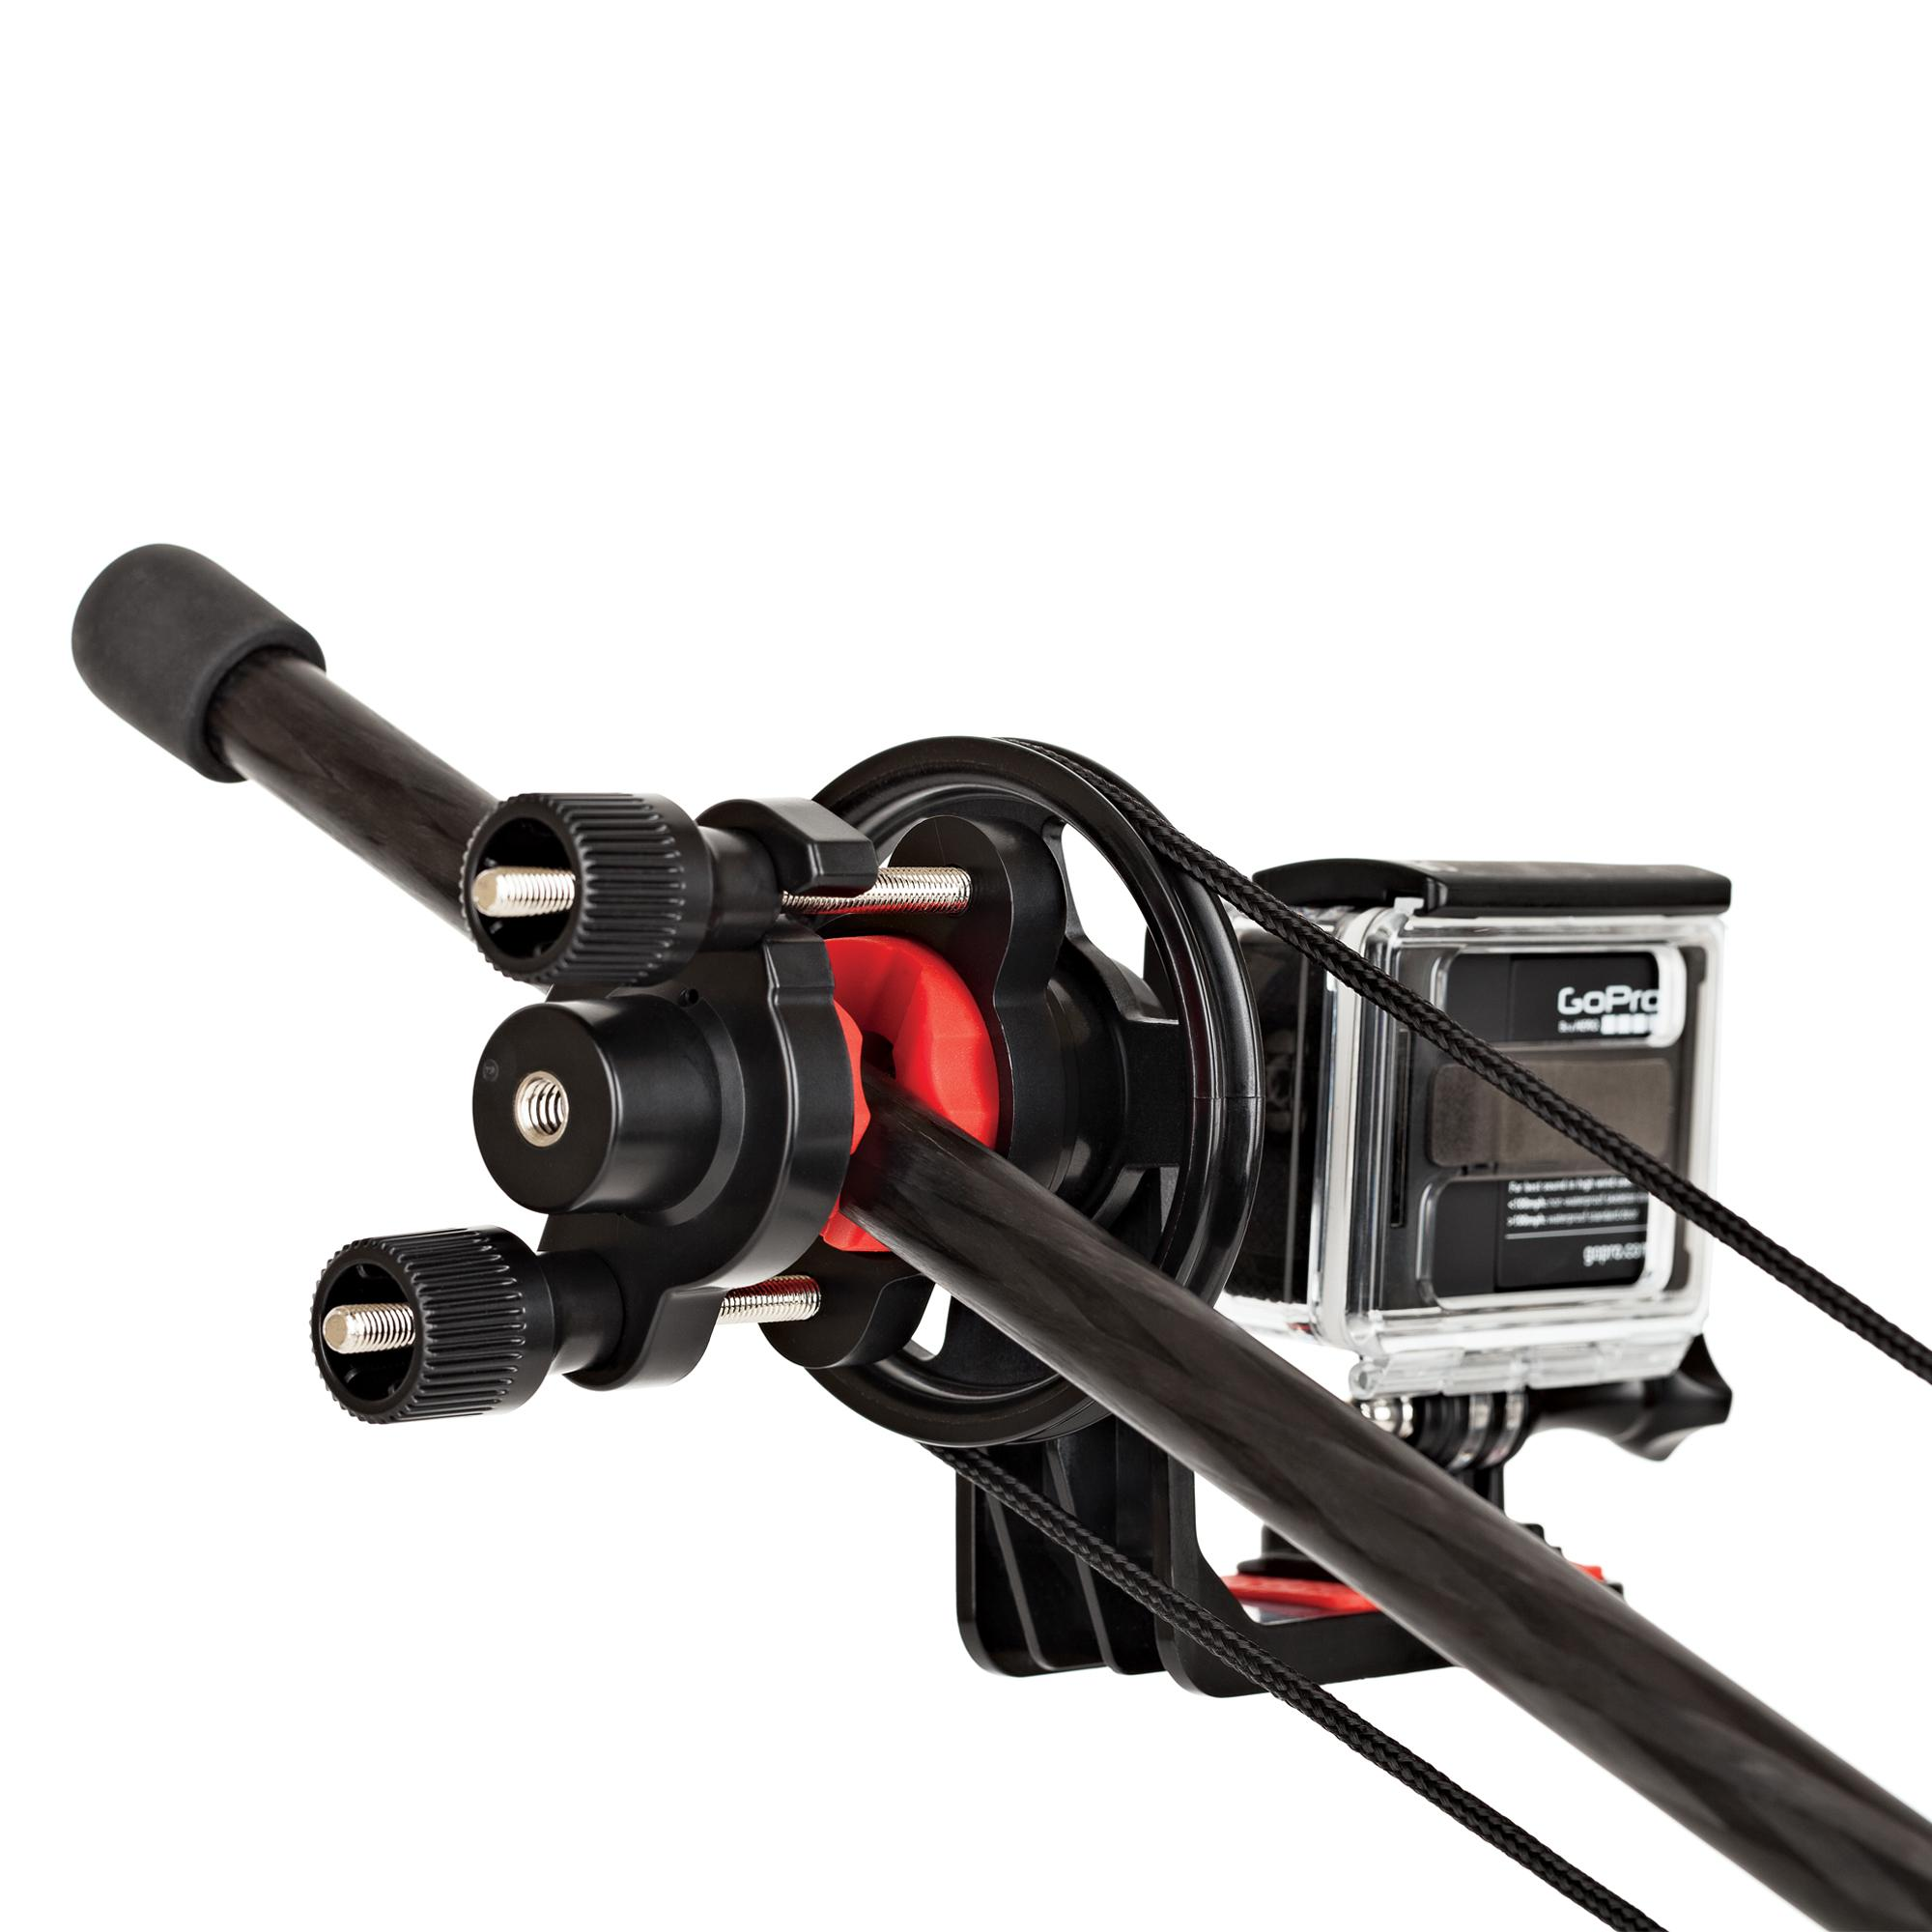 Jib Pole Crane : Joby action jib kit with pole pack capture cinematic crane shots your gopro